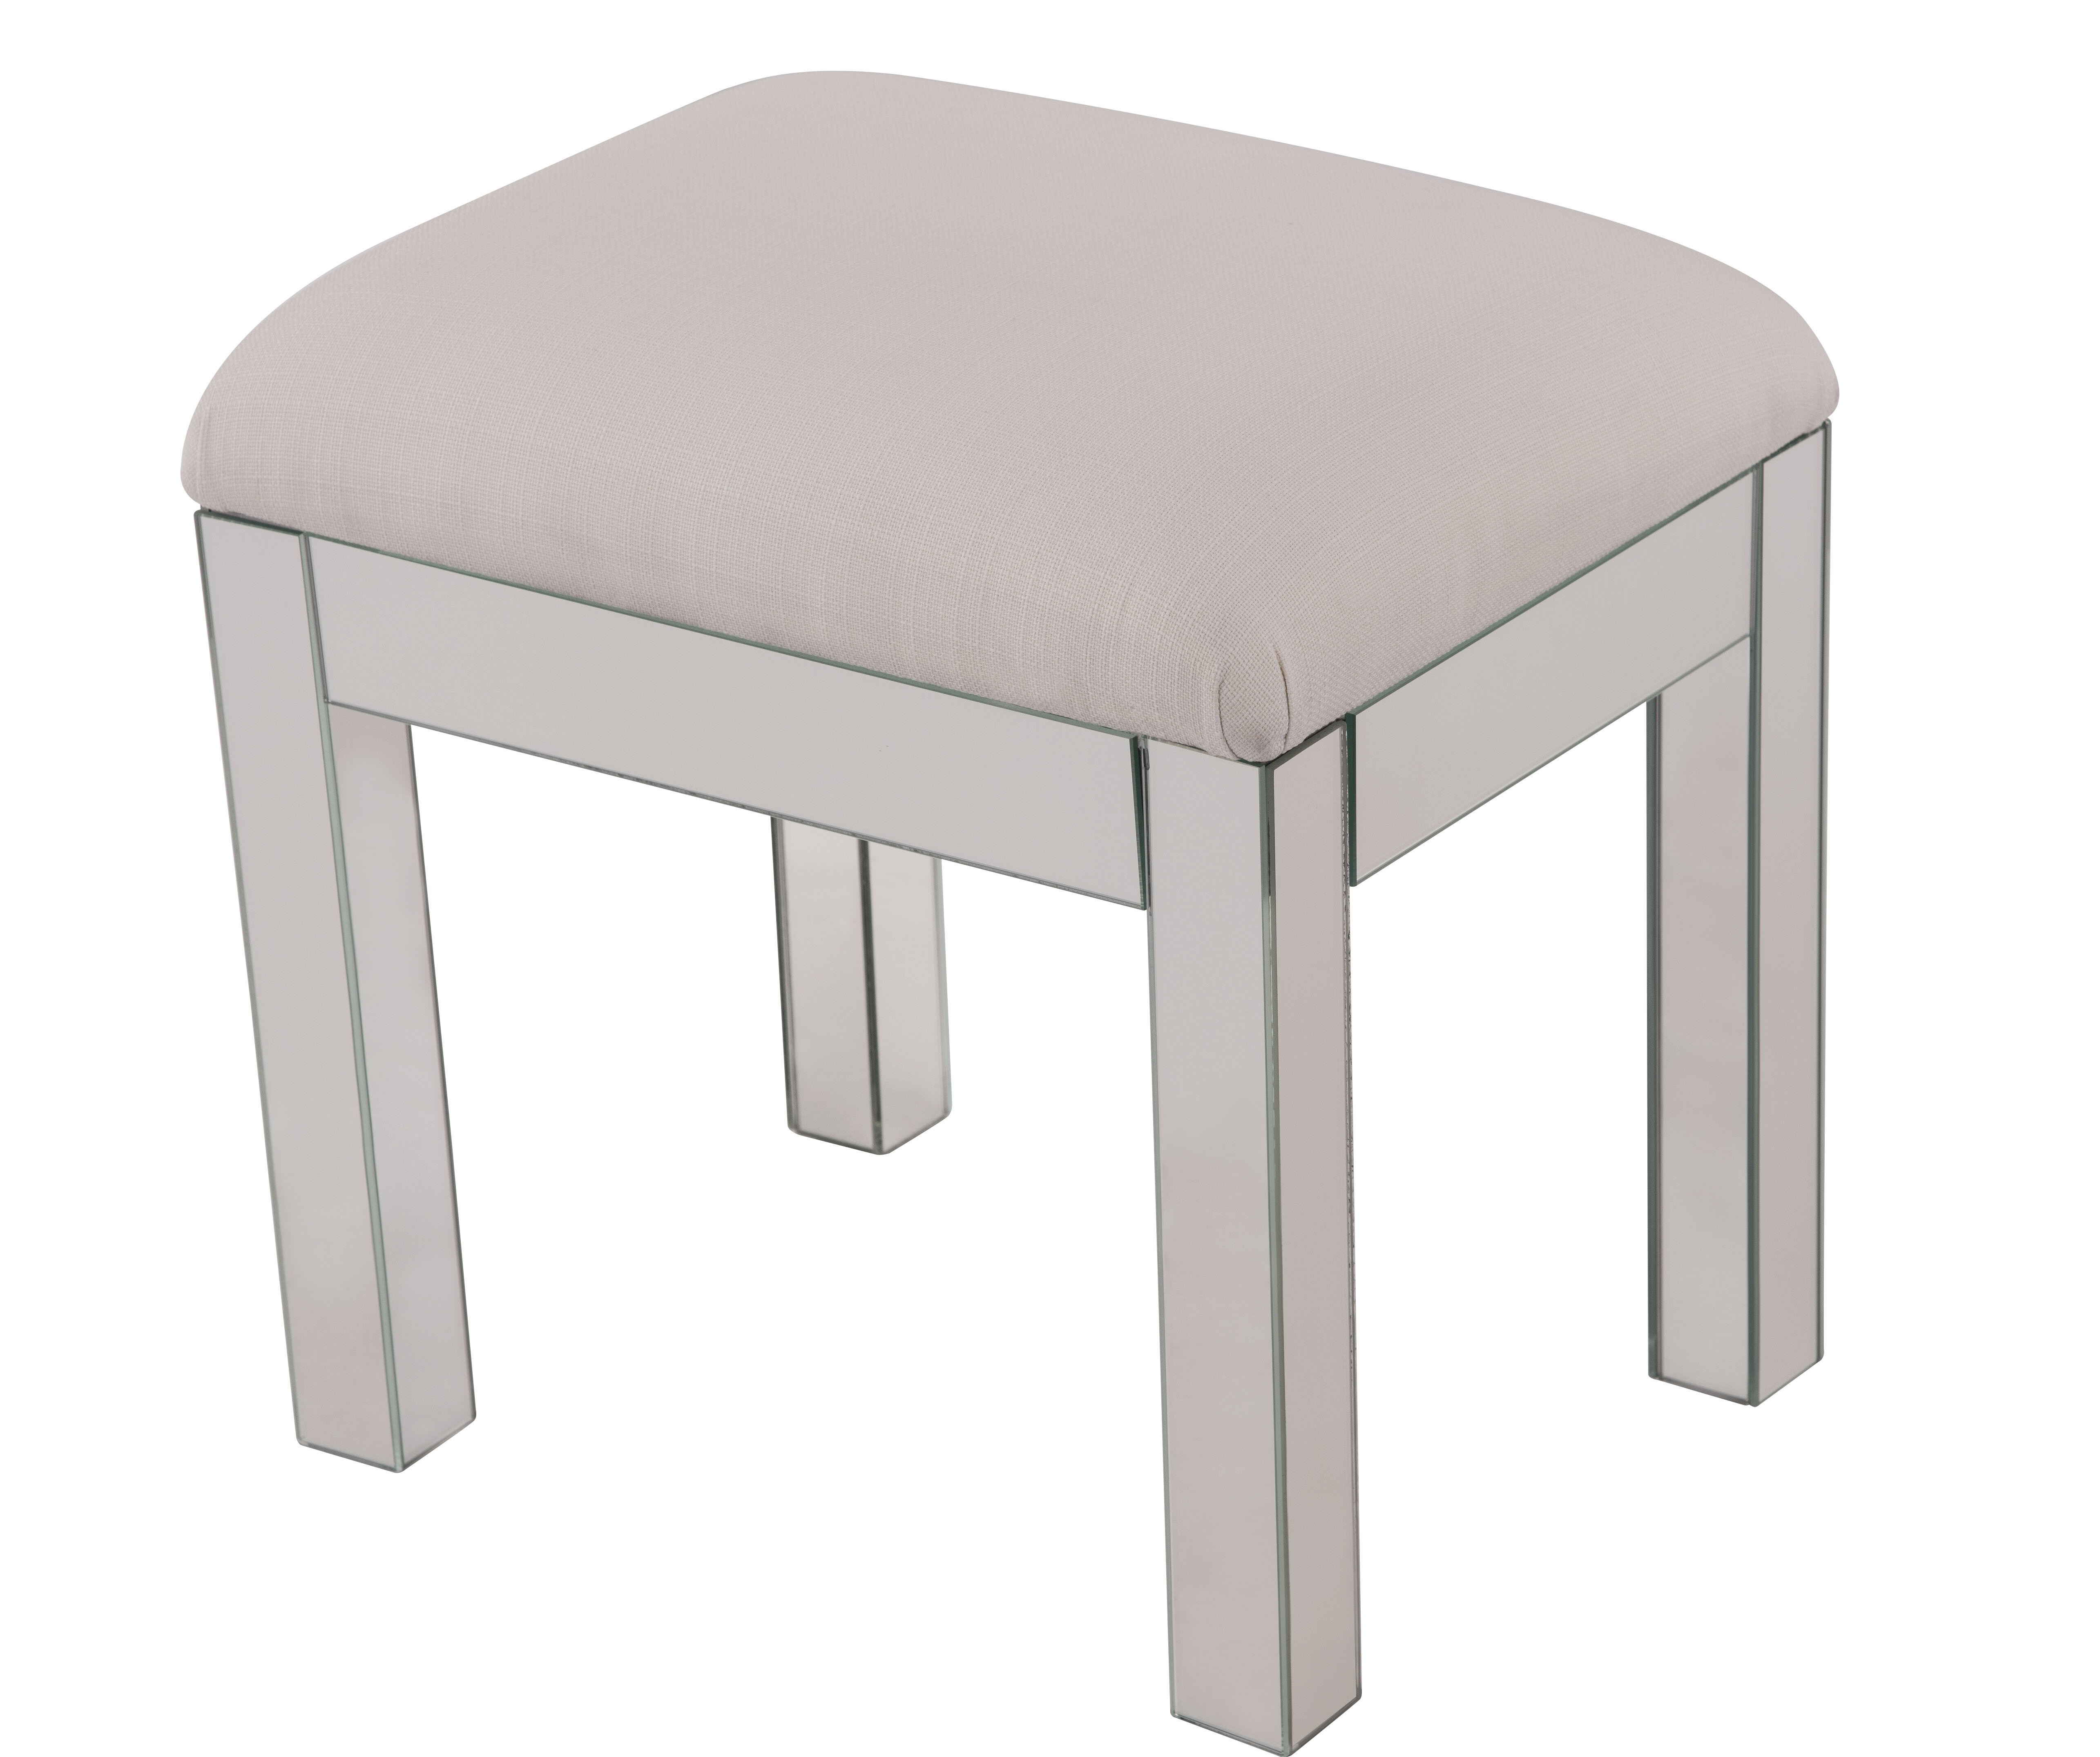 Mirrored Accent Stools You Ll Love In 2021 Wayfair